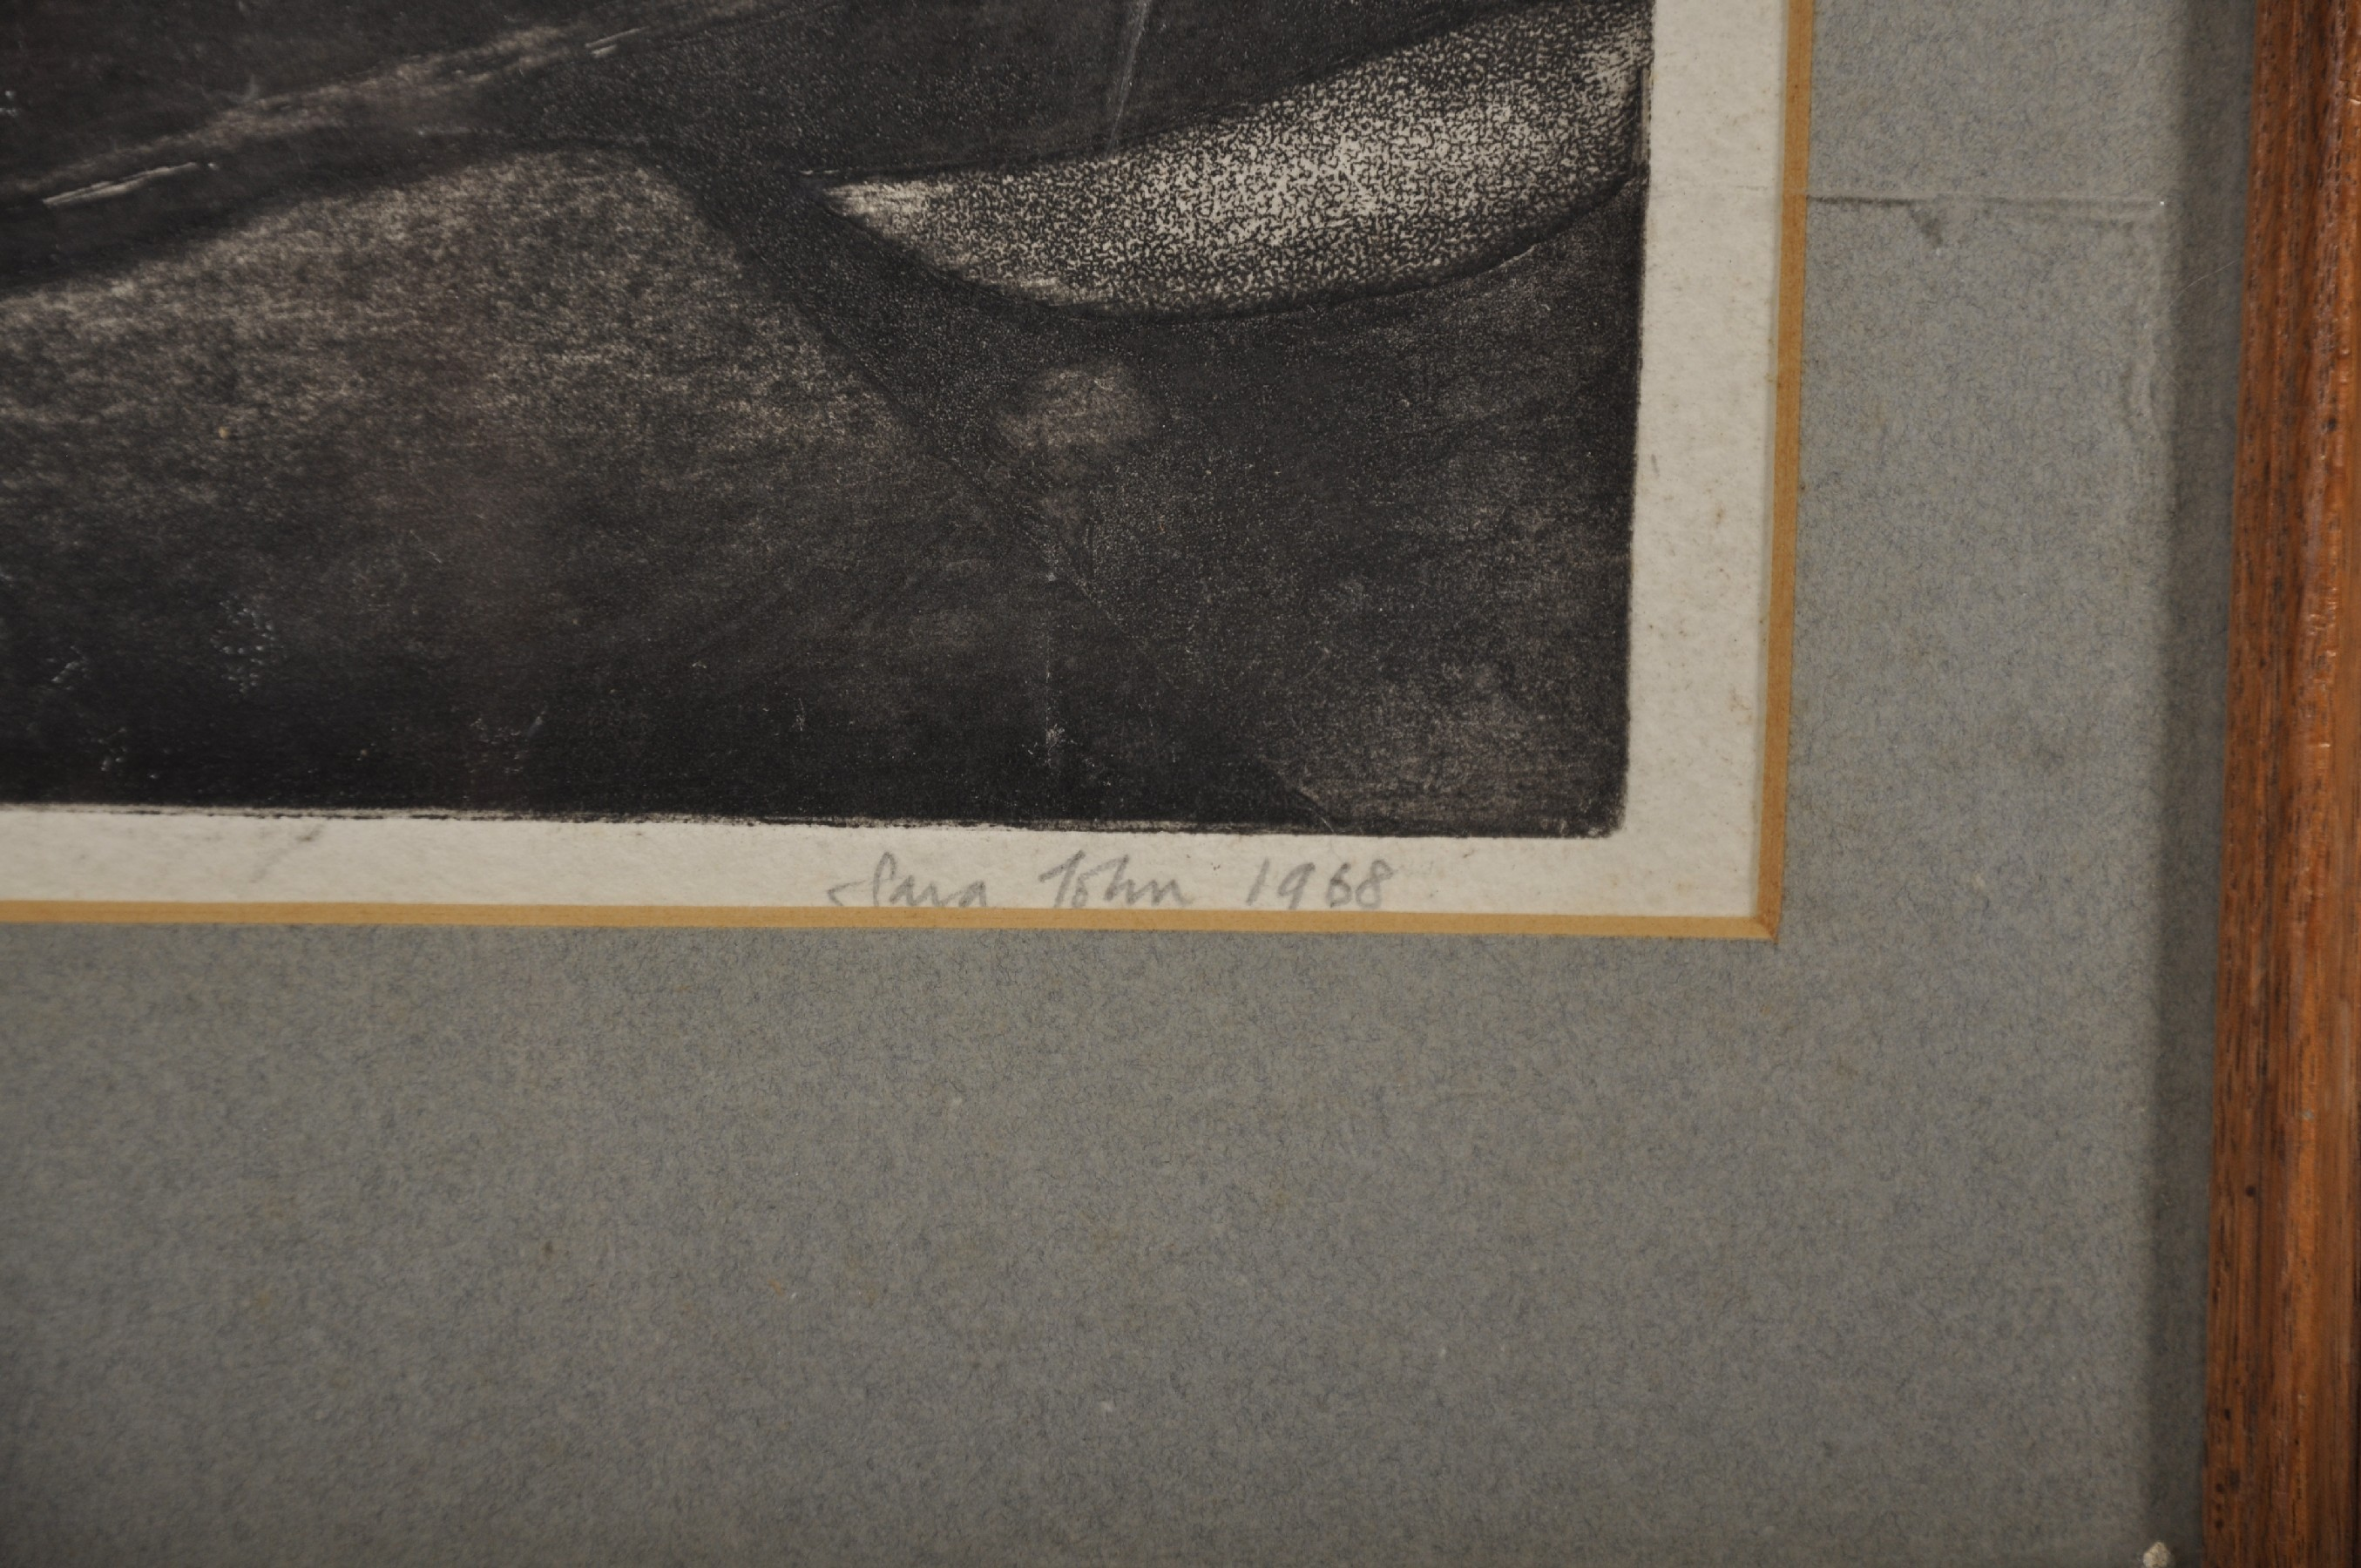 """Sara John (1946- ) British. An Abstract Landscape, Etching, Signed and Dated 1968 in Pencil, 5.5"""" - Image 3 of 4"""